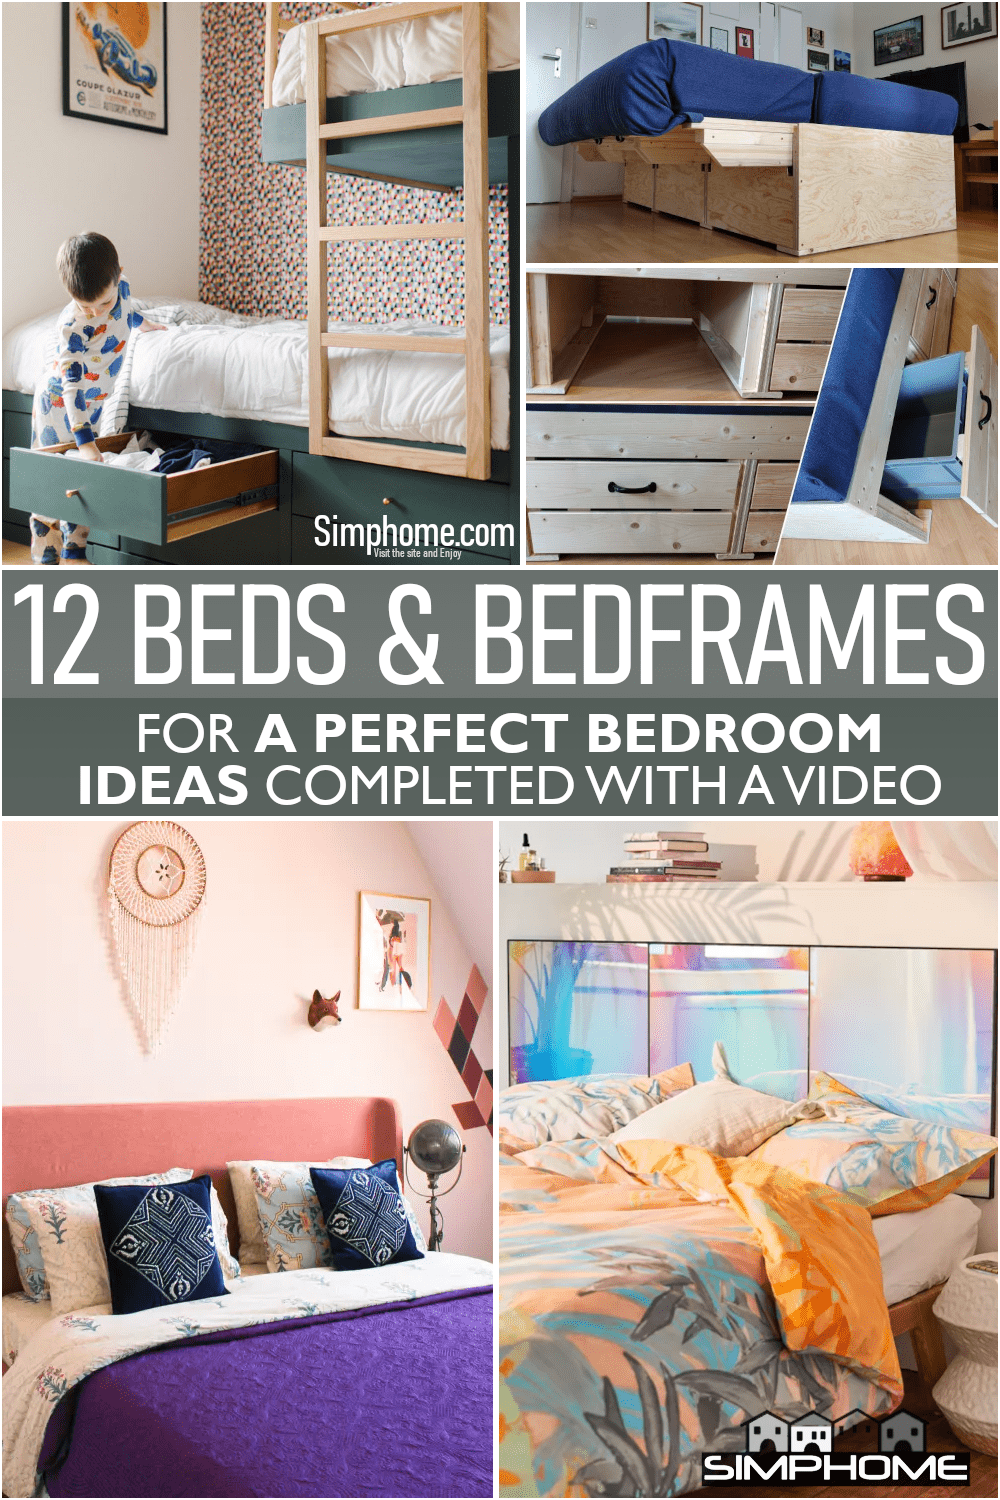 12 Beds and Bedframes Ideas for A Perfect Bedroom via Simphome.comFeatured